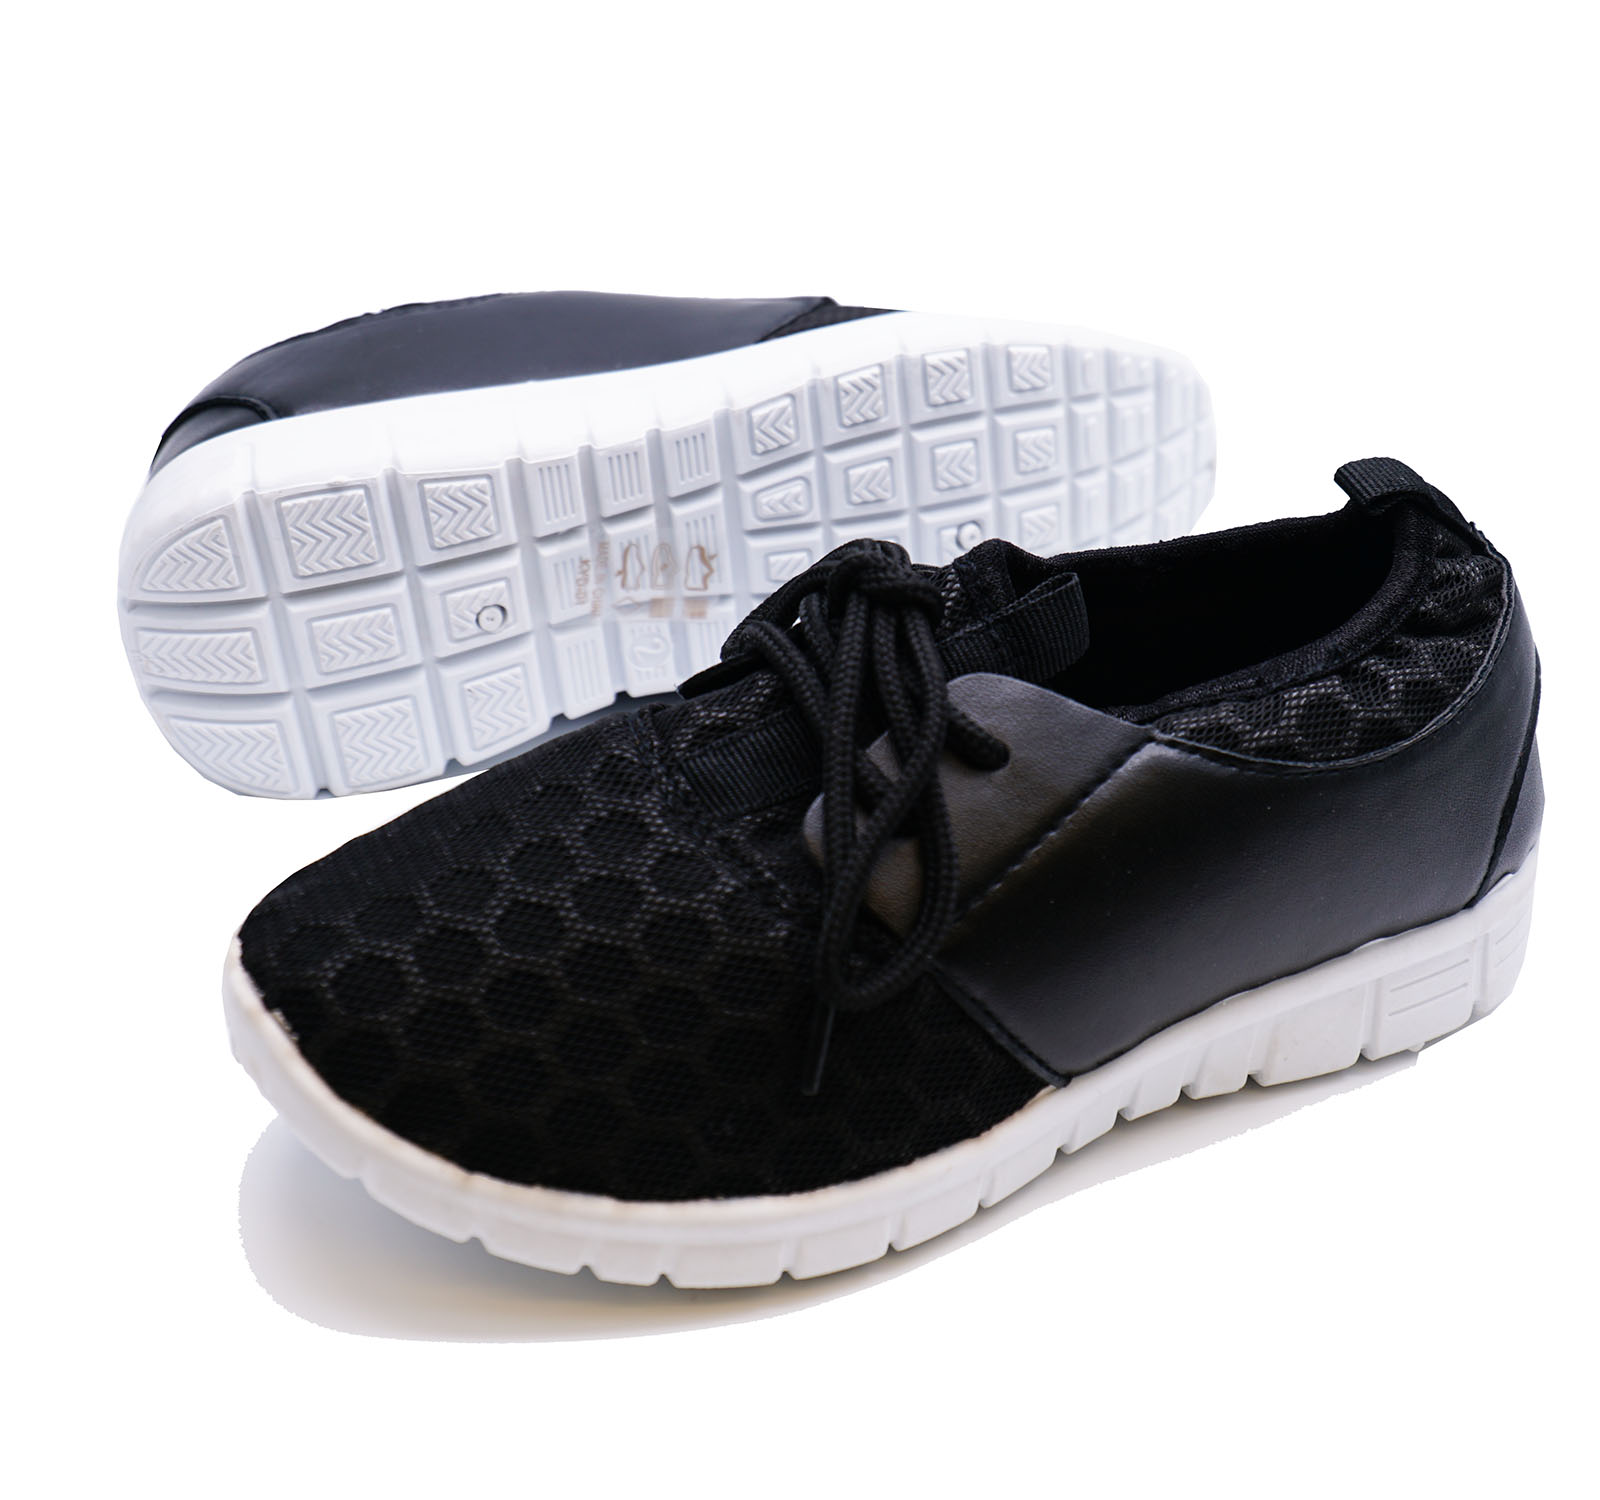 Sentinel BOYS GIRLS KIDS CHILDRENS BLACK SCHOOL TRAINERS LACE FLAT SPORTS  SHOES SIZE 10-3 03d1f84d2